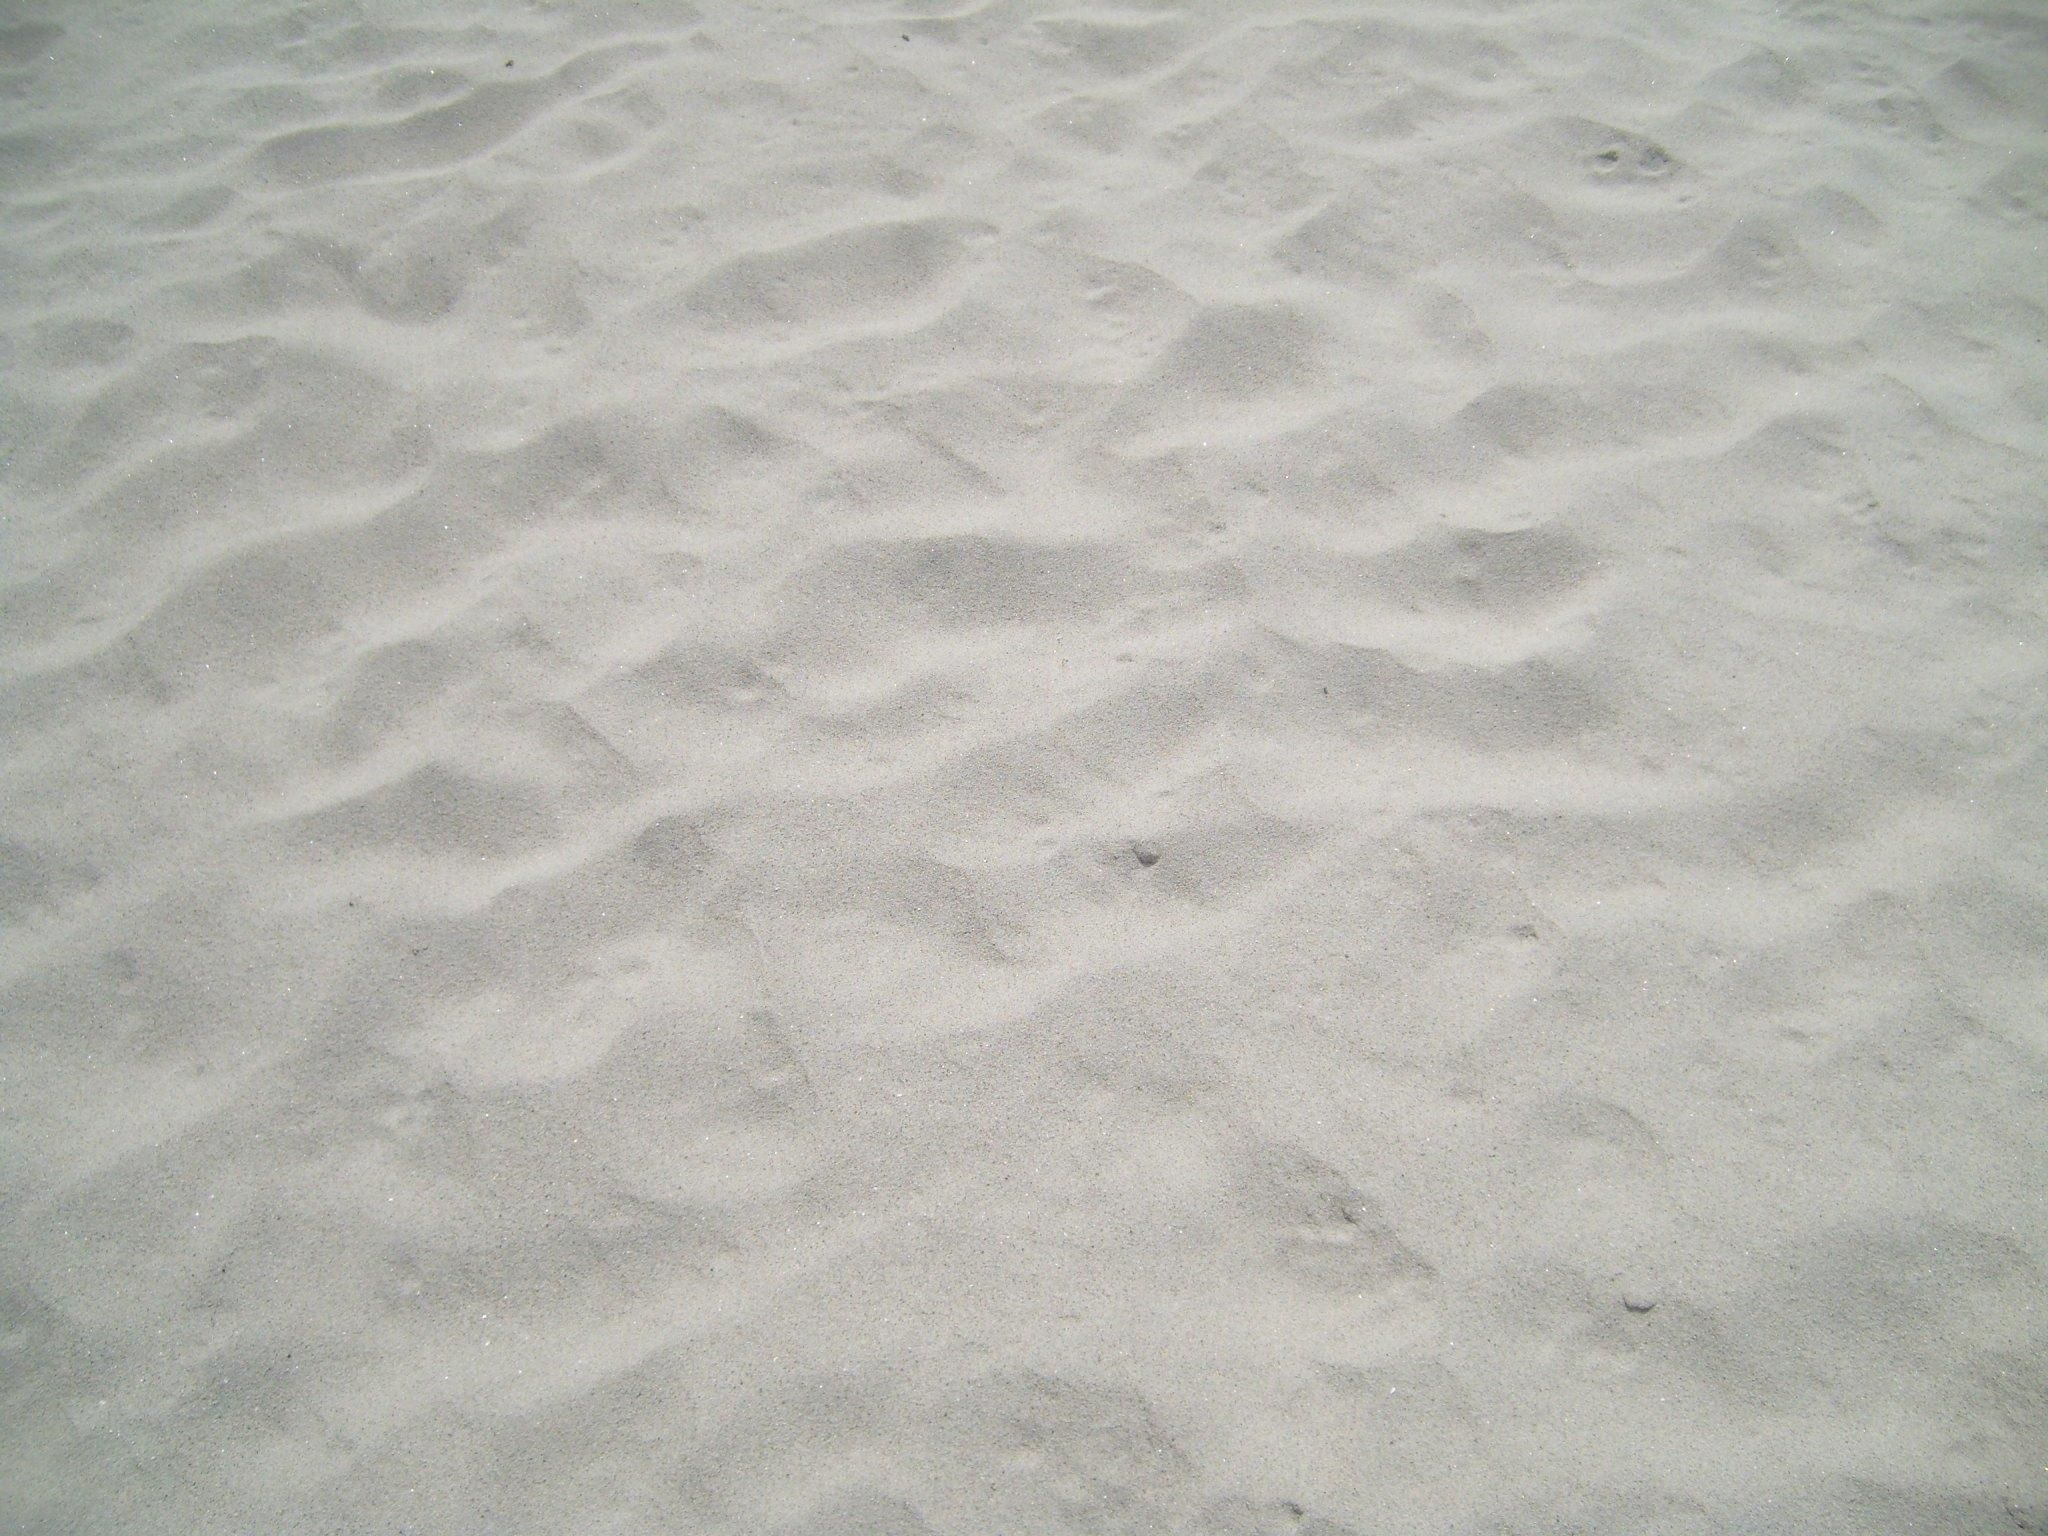 Sky Hd Wallpaper Free Picture White Soft Sand Beach